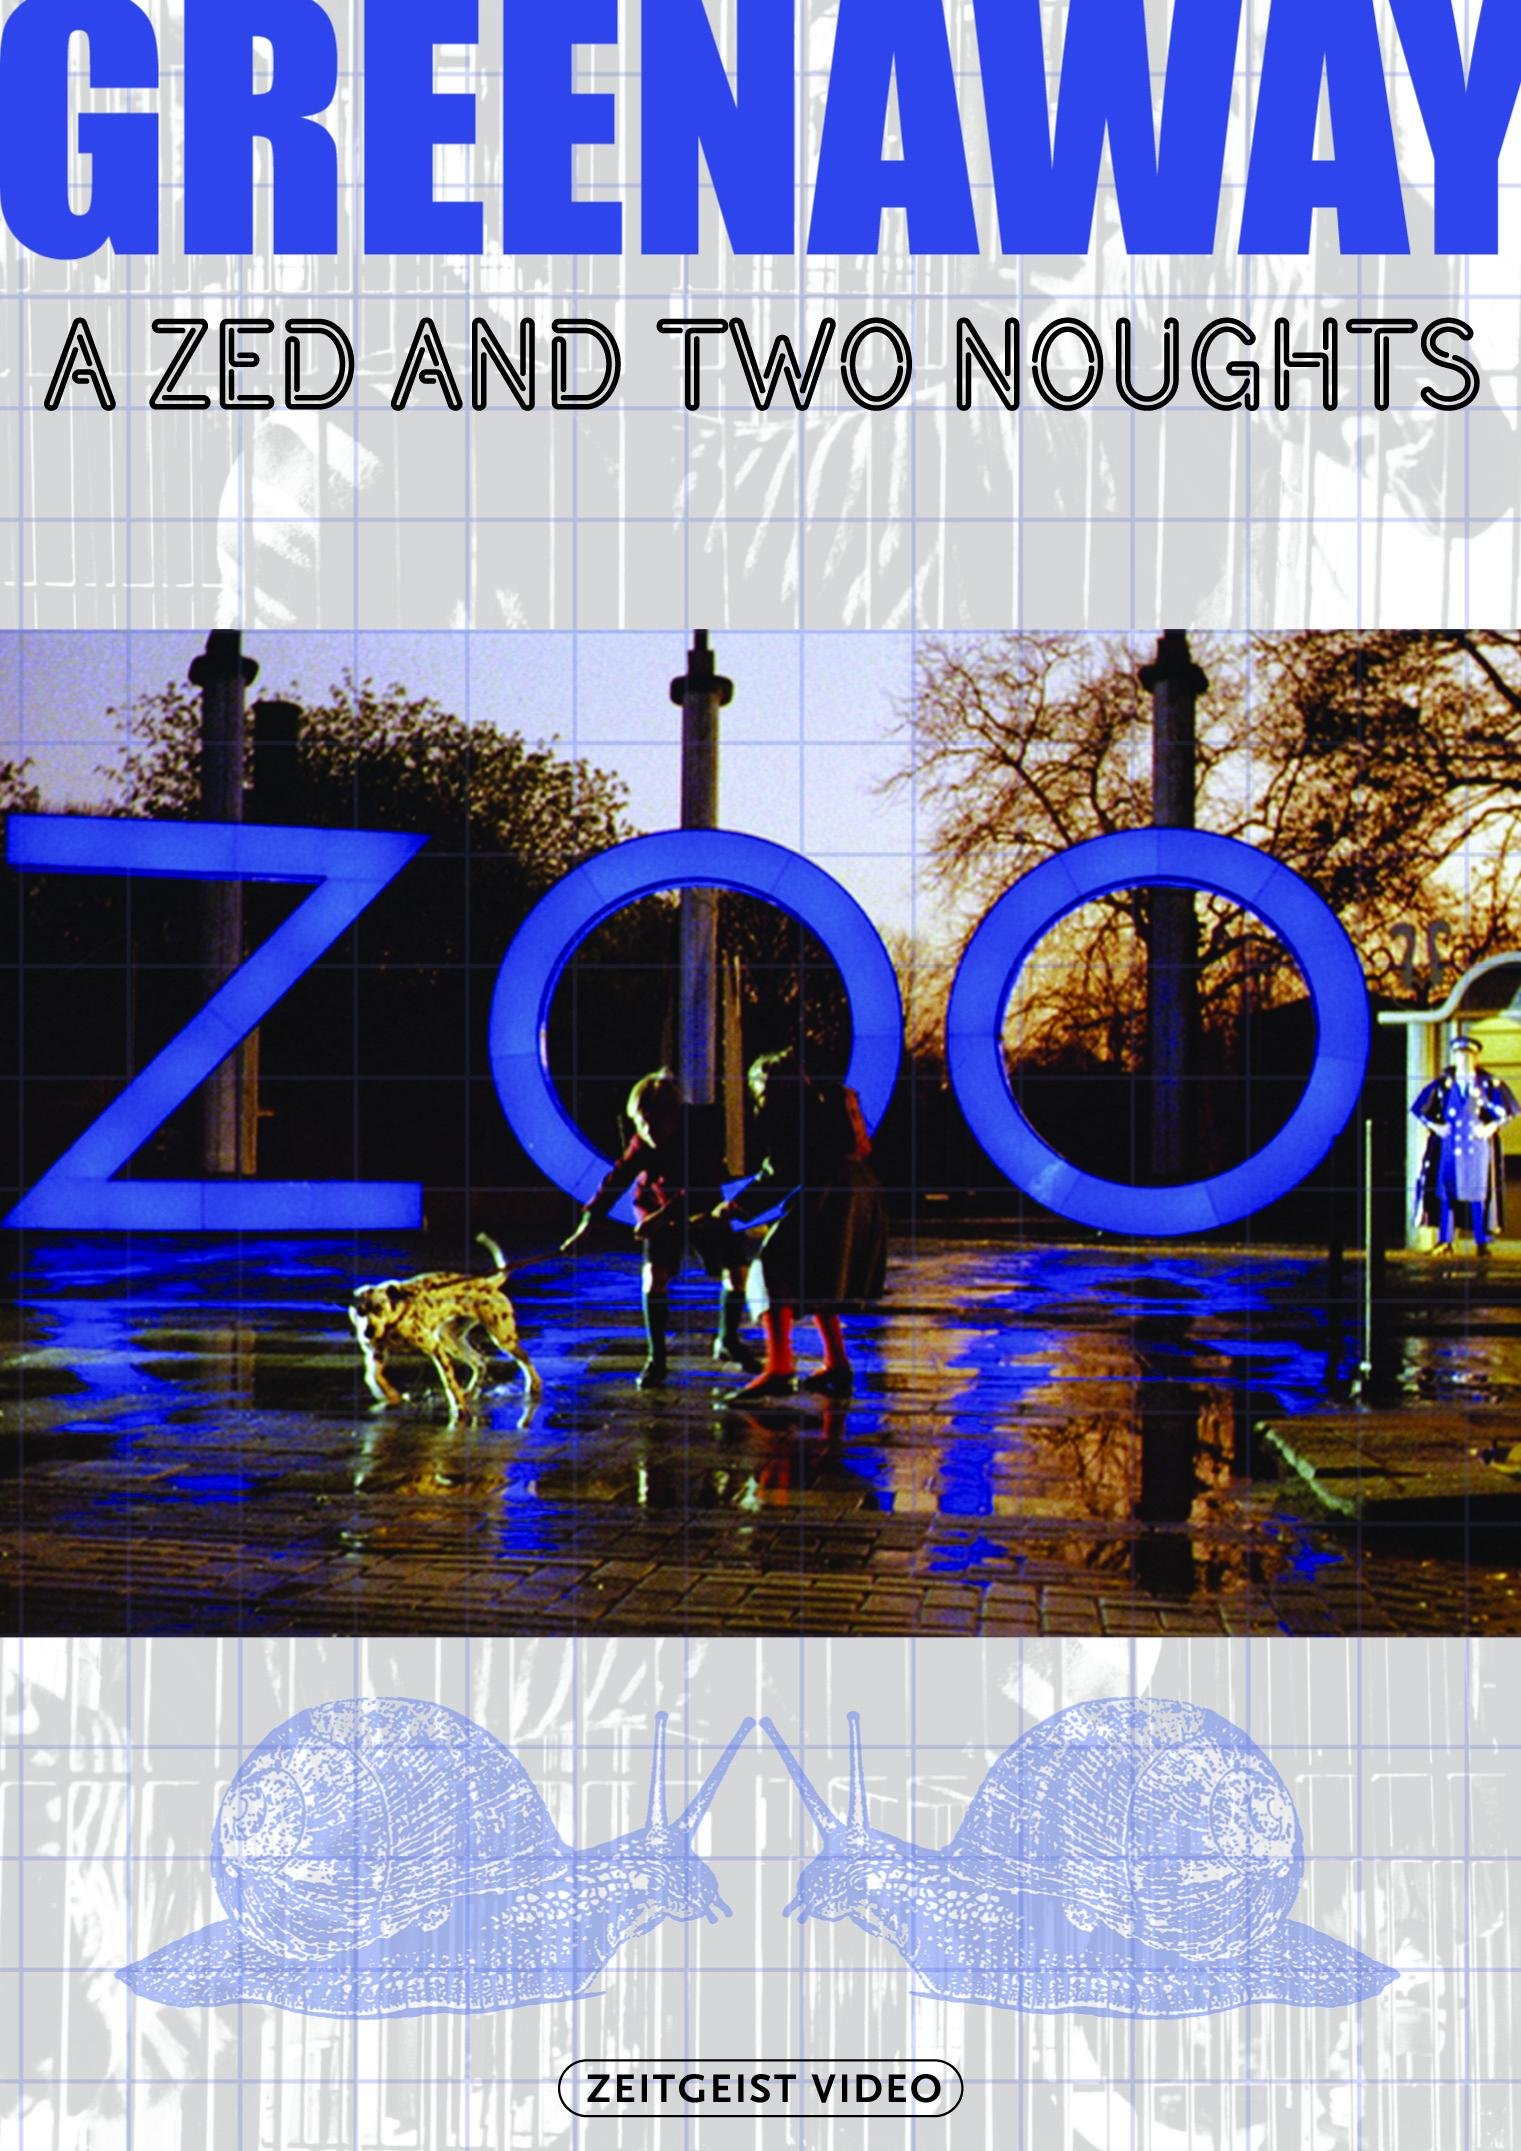 a zed and two noughts full movie free